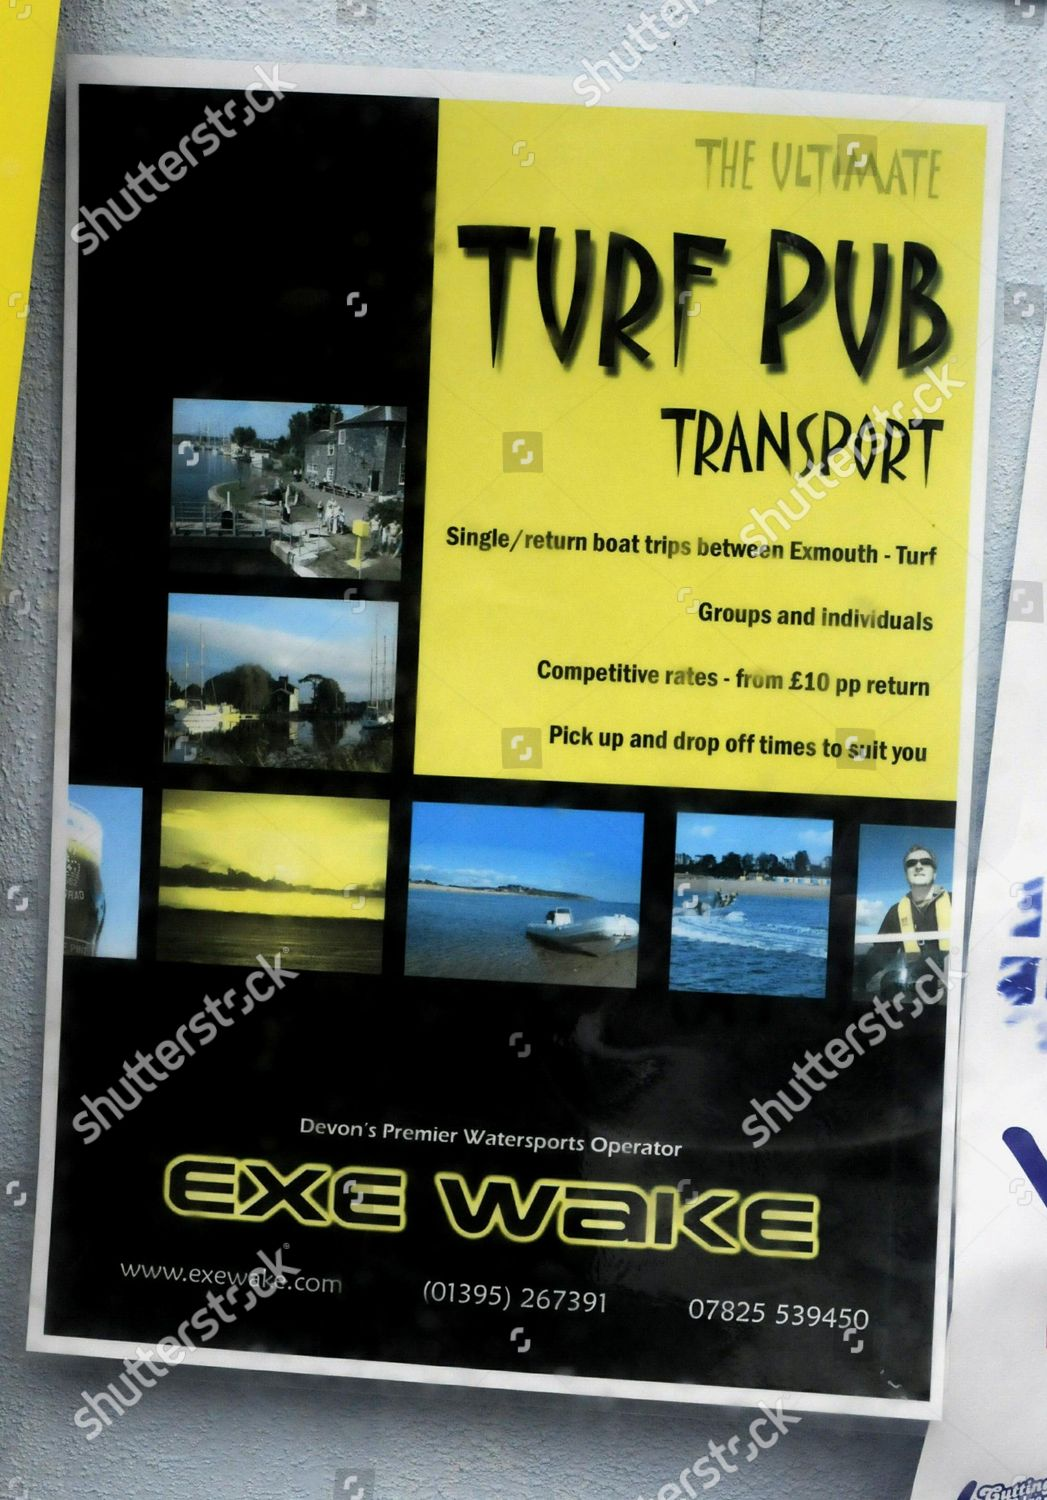 Sign window Exe Wake company allegedly organising Editorial